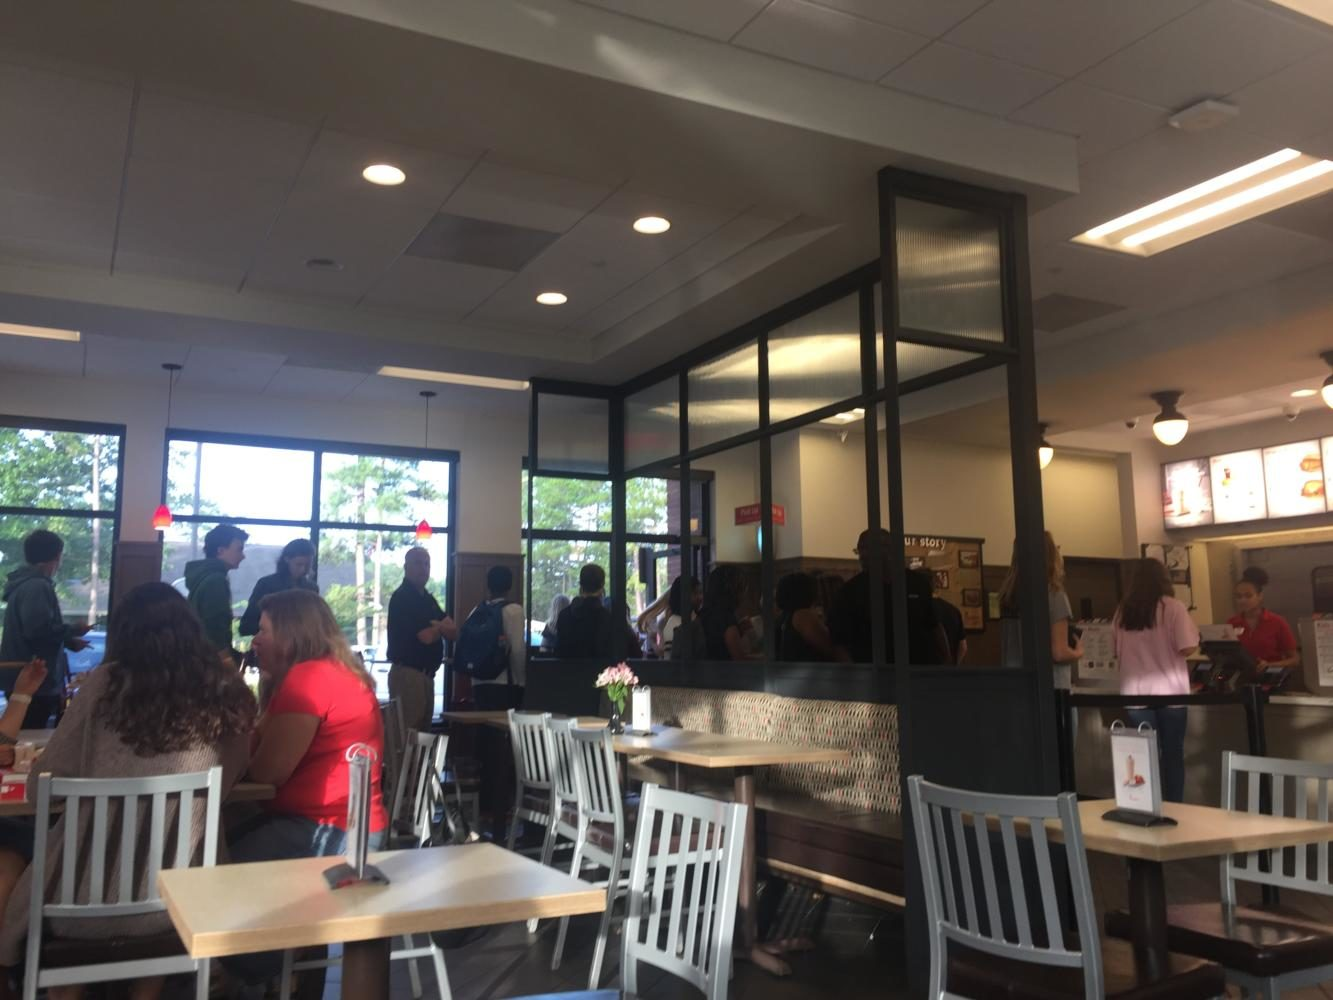 Line+for+free+Chick-fil-A+reaches+out+the+door.